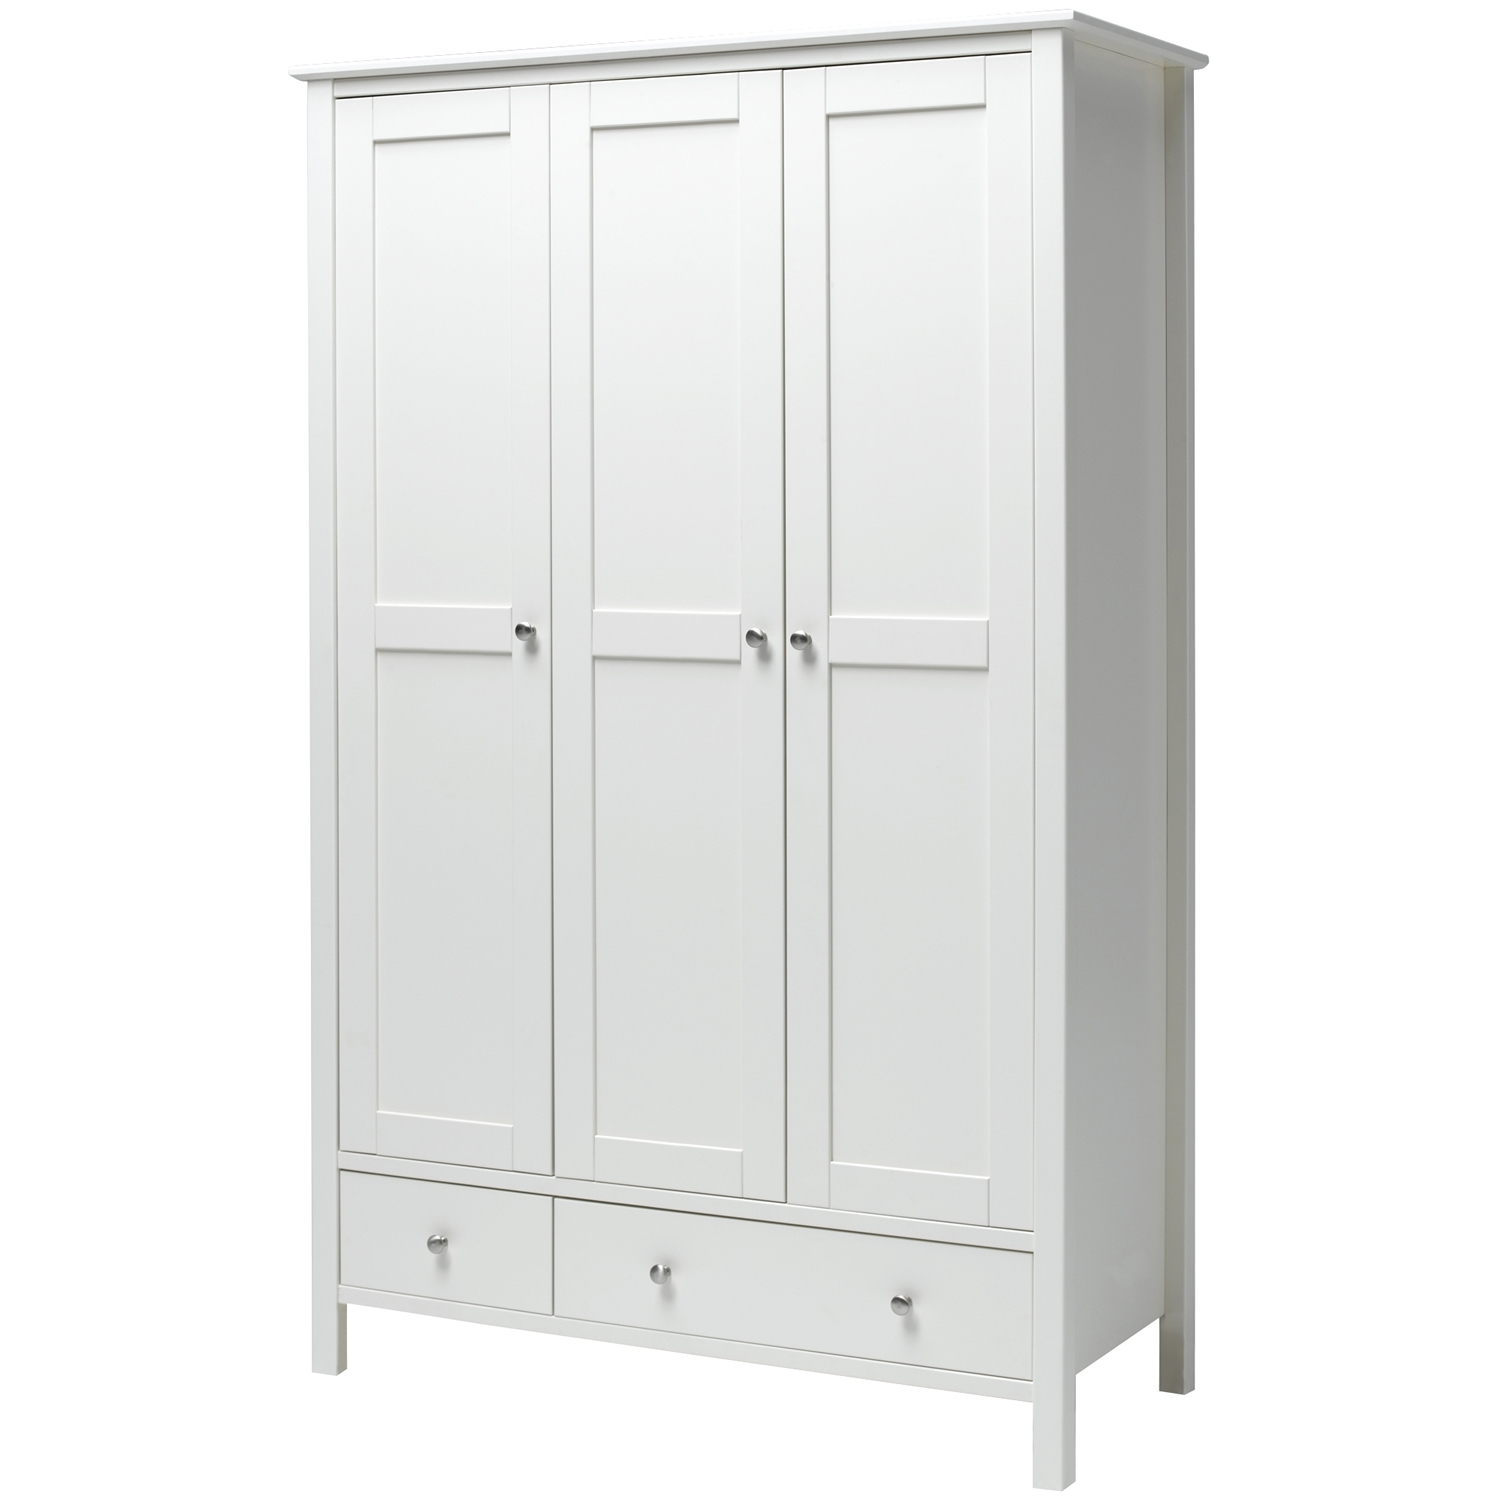 White Three Door Wardrobes Throughout Most Popular Stockholm 3 Door 2 Drawer Wardrobe White – Simply Furniture (View 3 of 15)